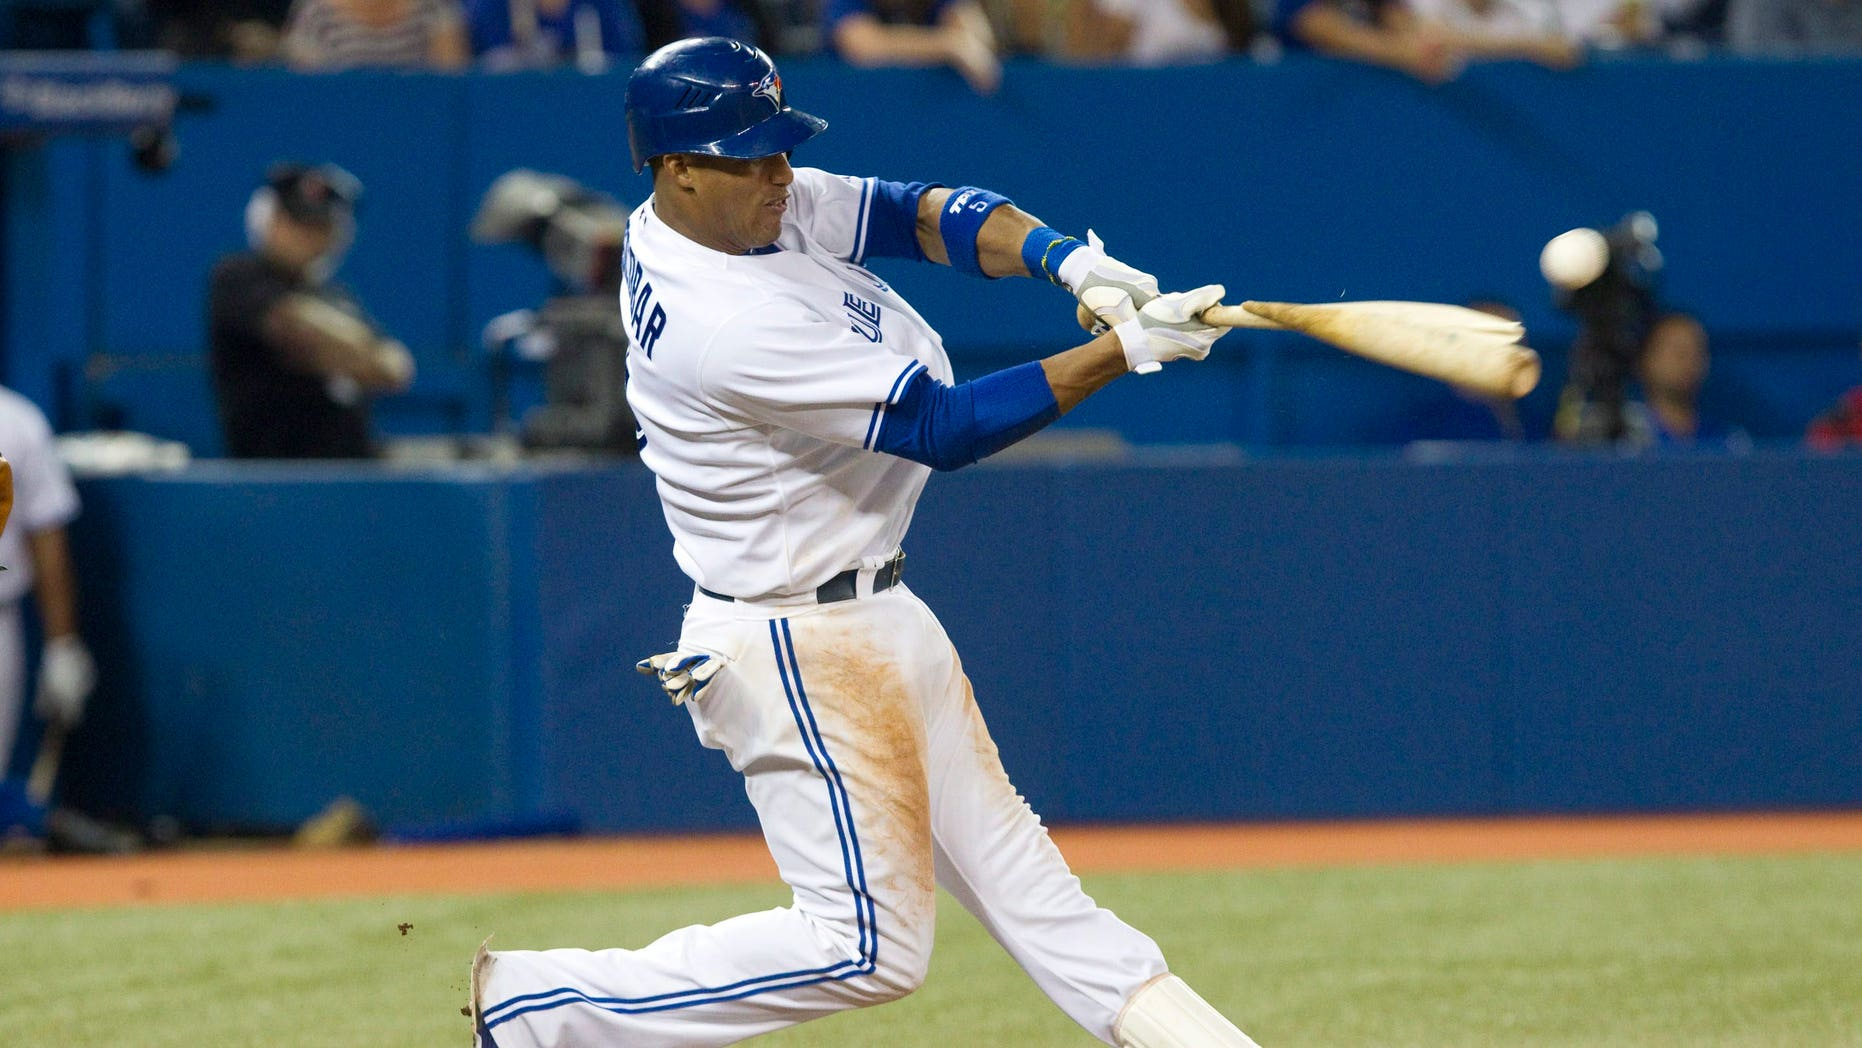 Sept. 5, 2012: Toronto Blue Jays' Yunel Escobar breaks his bat as he hits a double off a ball from Baltimore Orioles pitcher Miguel Gonzalez during the seventh inning of baseball game action in Toronto.